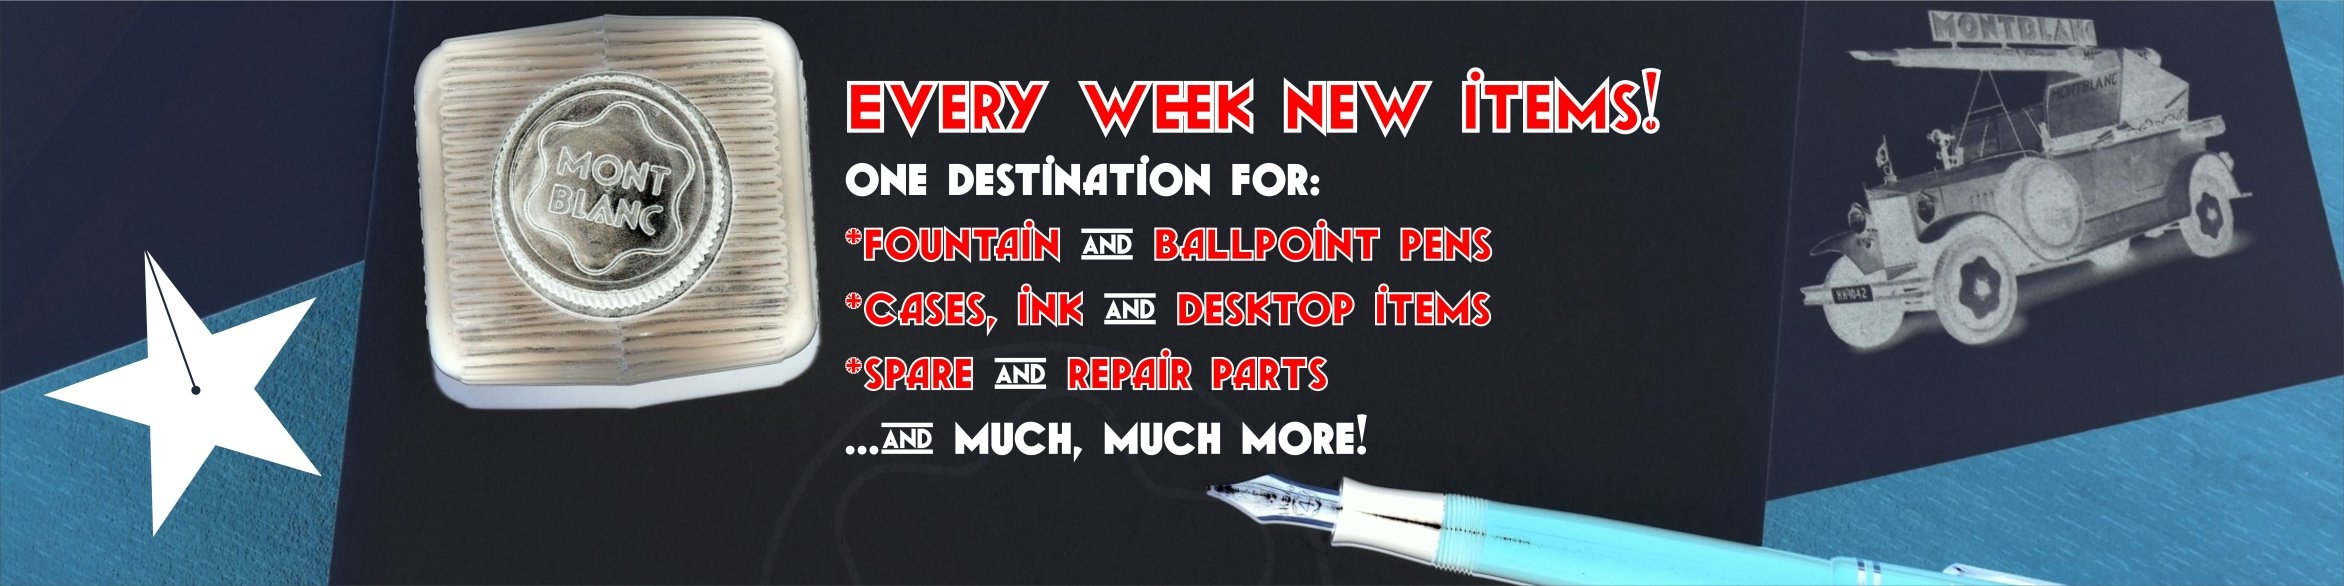 Everyweek new items